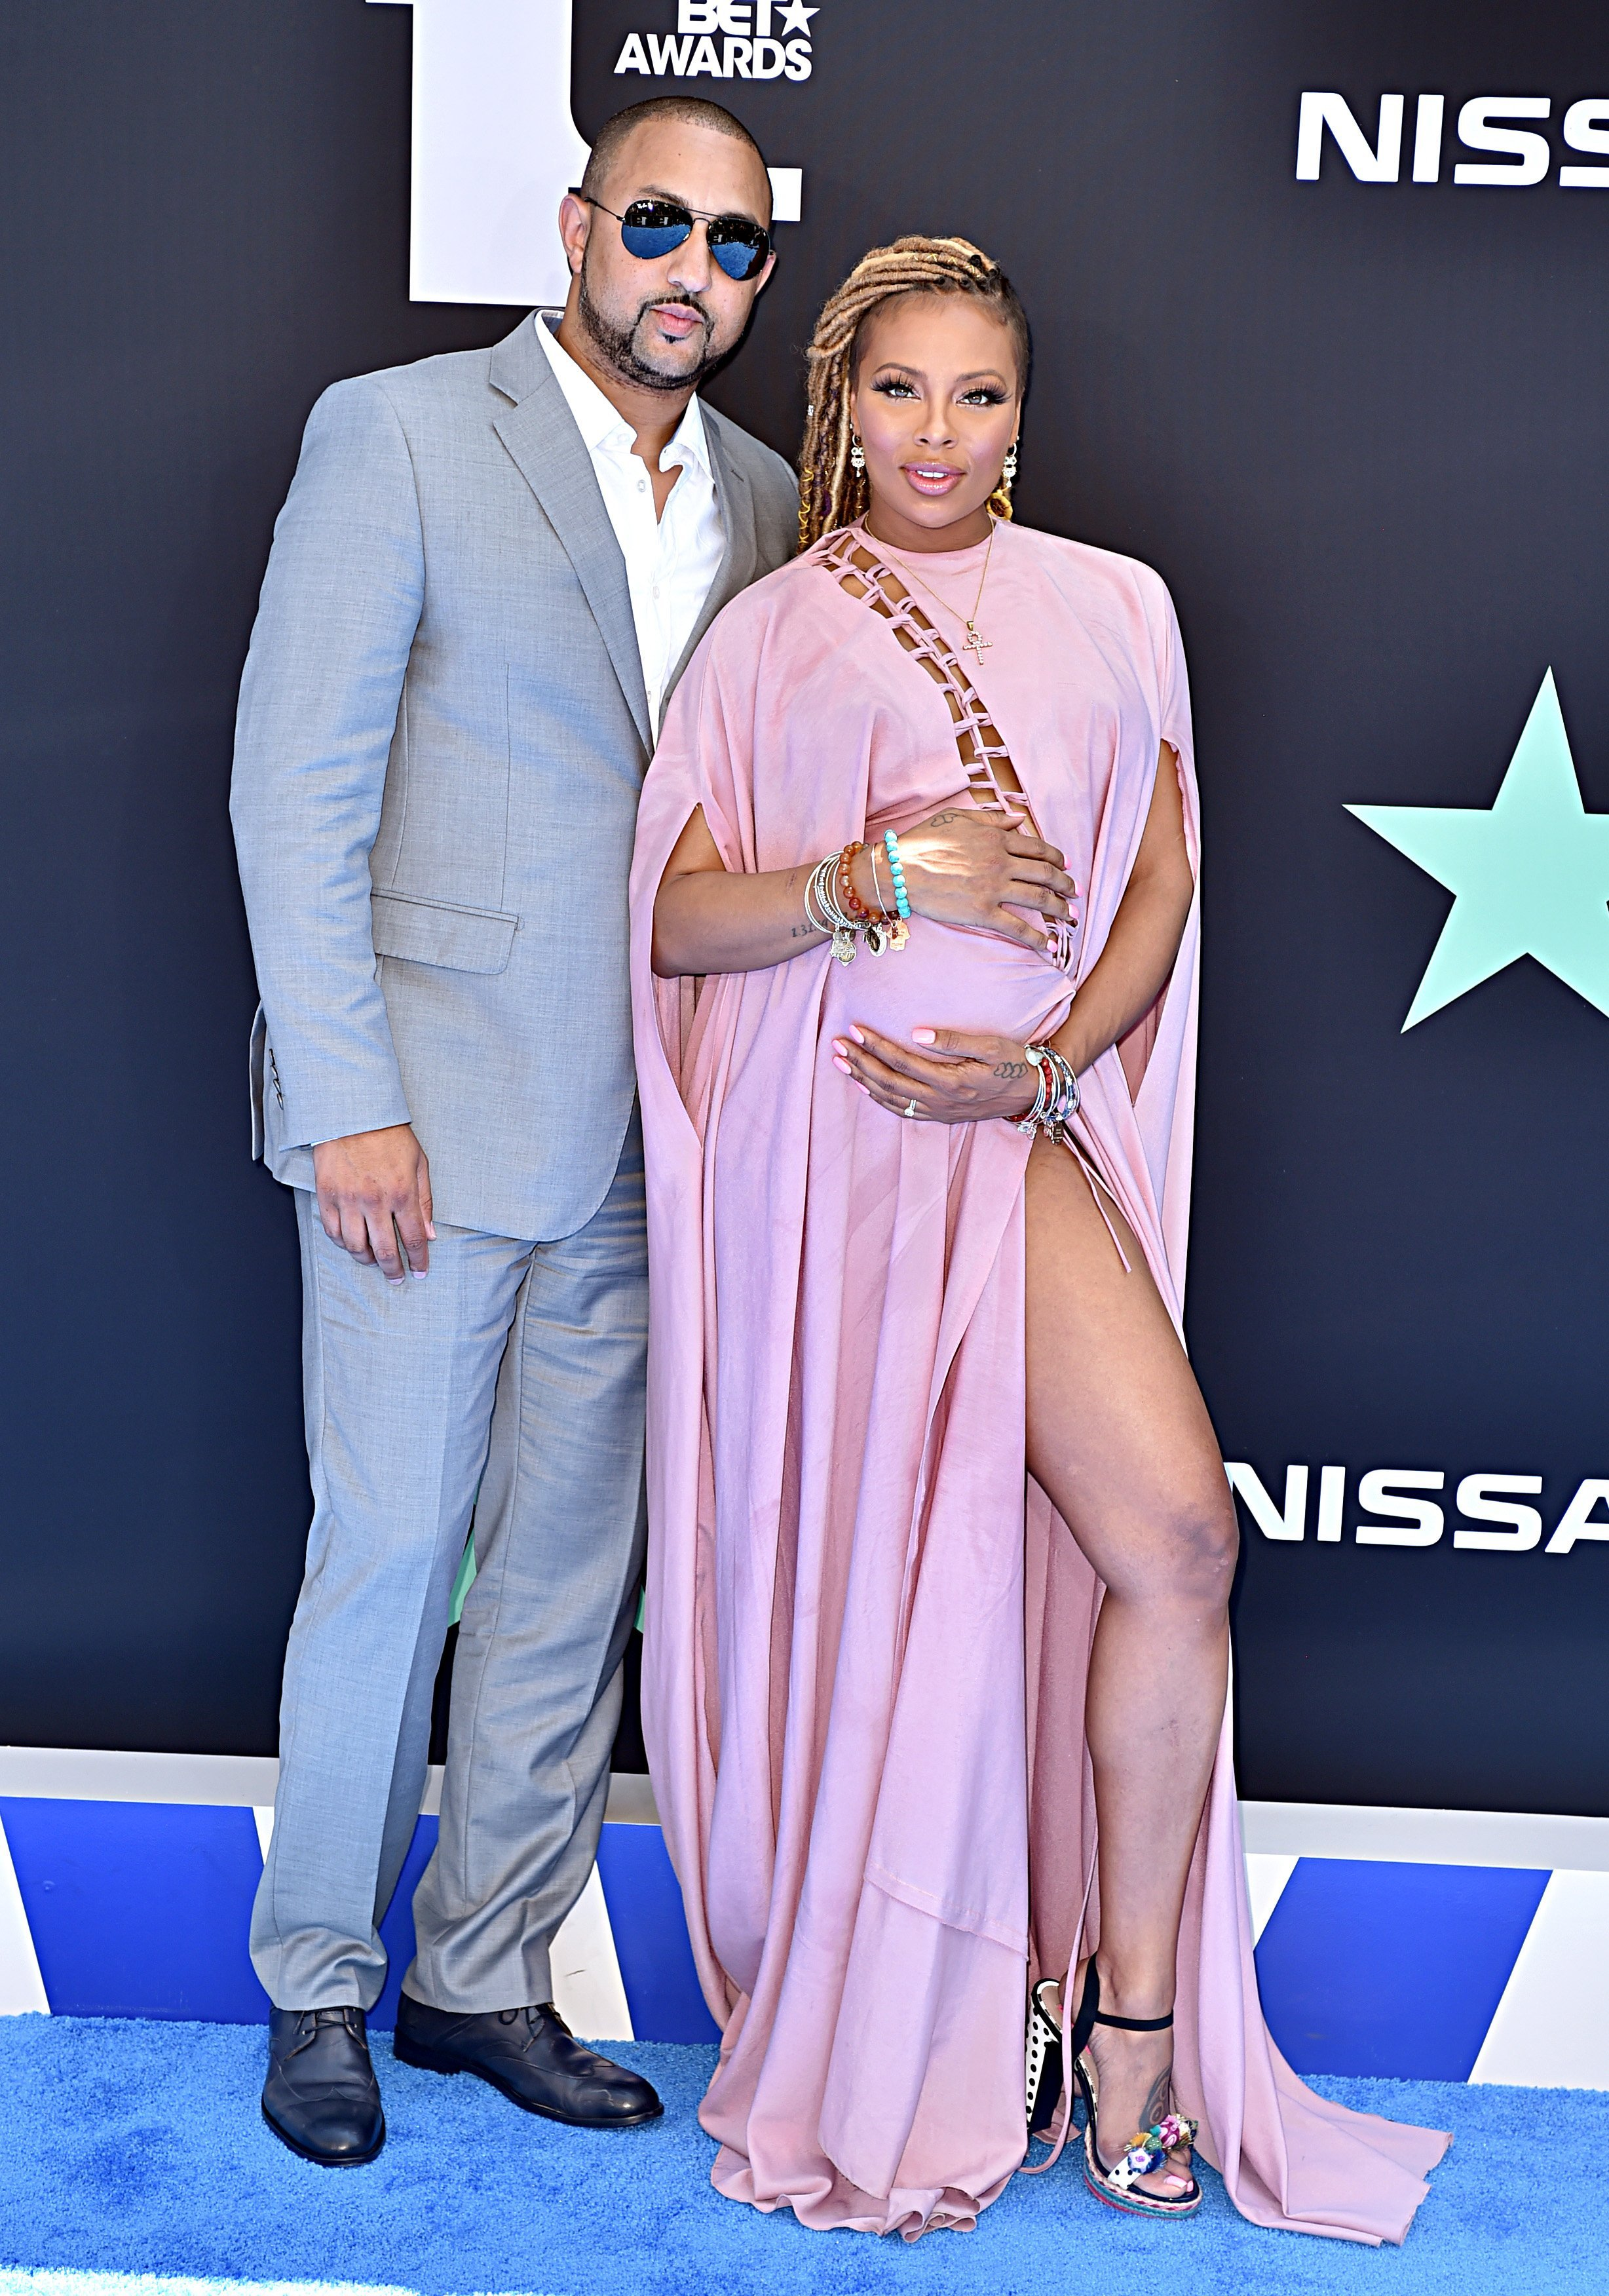 Eva Marcille & her husband, Michael Sterling at the 2019 BET Awards on June 23, 2019 in Los Angeles, California. | Photo: Getty Images